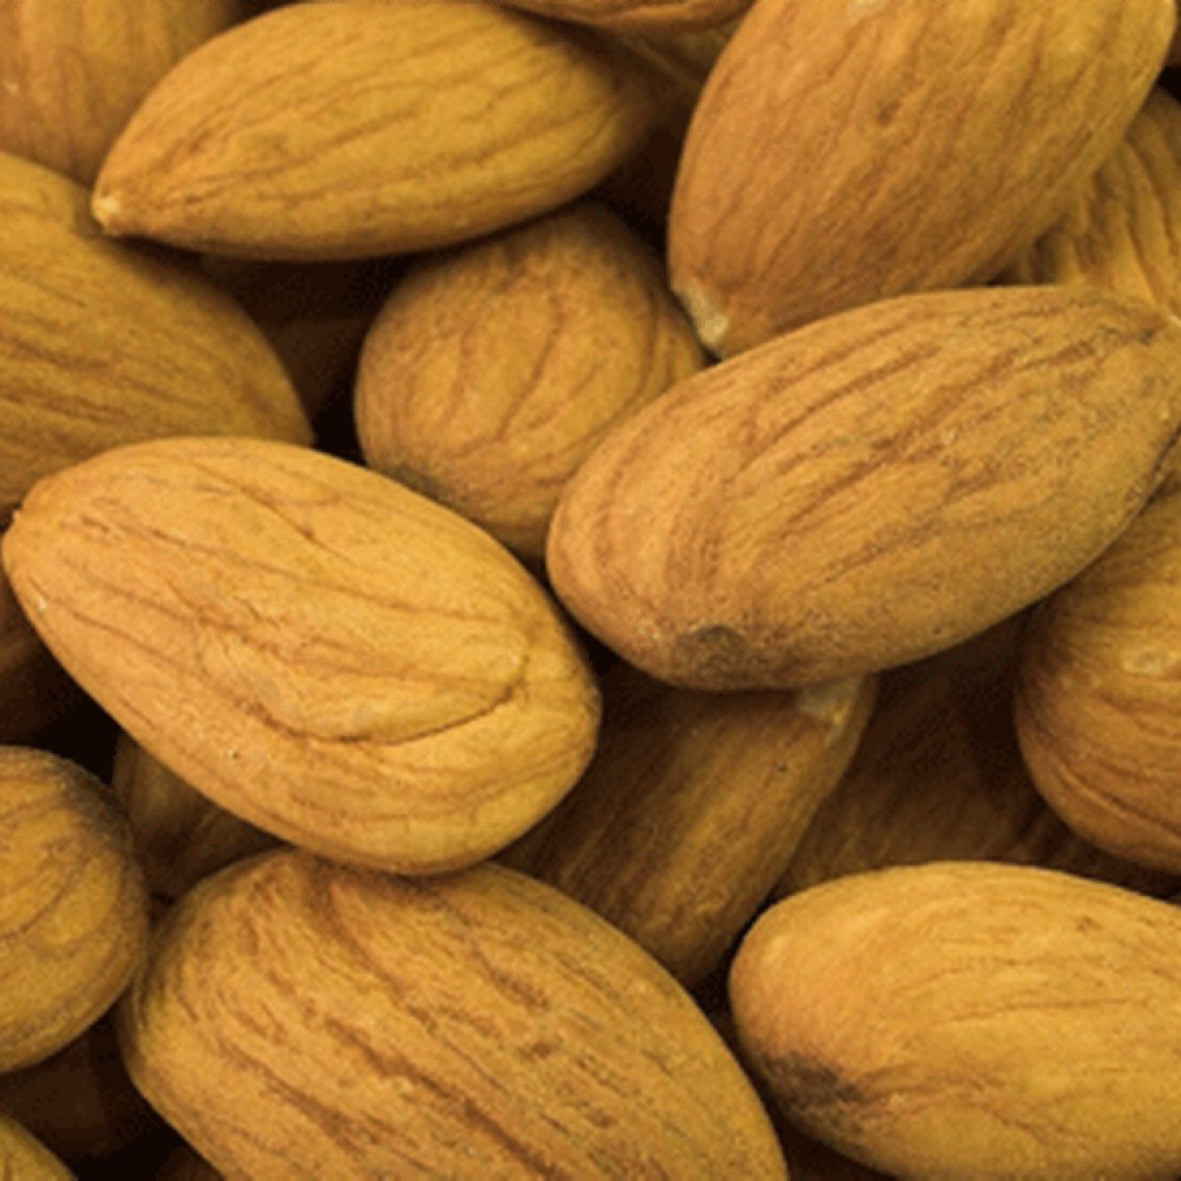 Almond<strong>Almond 'plumps 'fine hair while providing a natural light emollient for each hair stand.</strong>